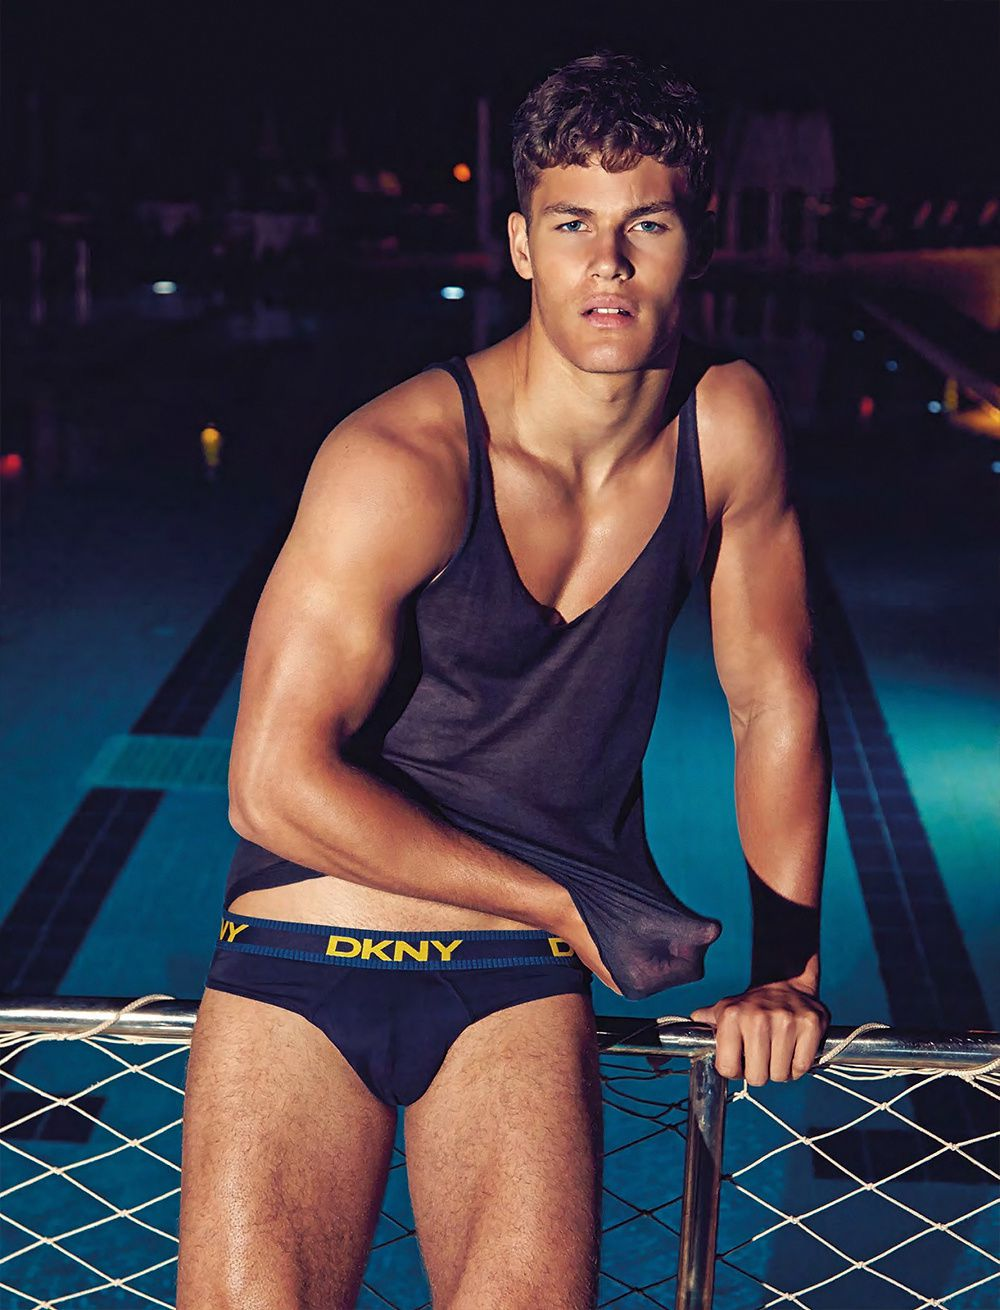 Daniel Jaems for Attitude UK